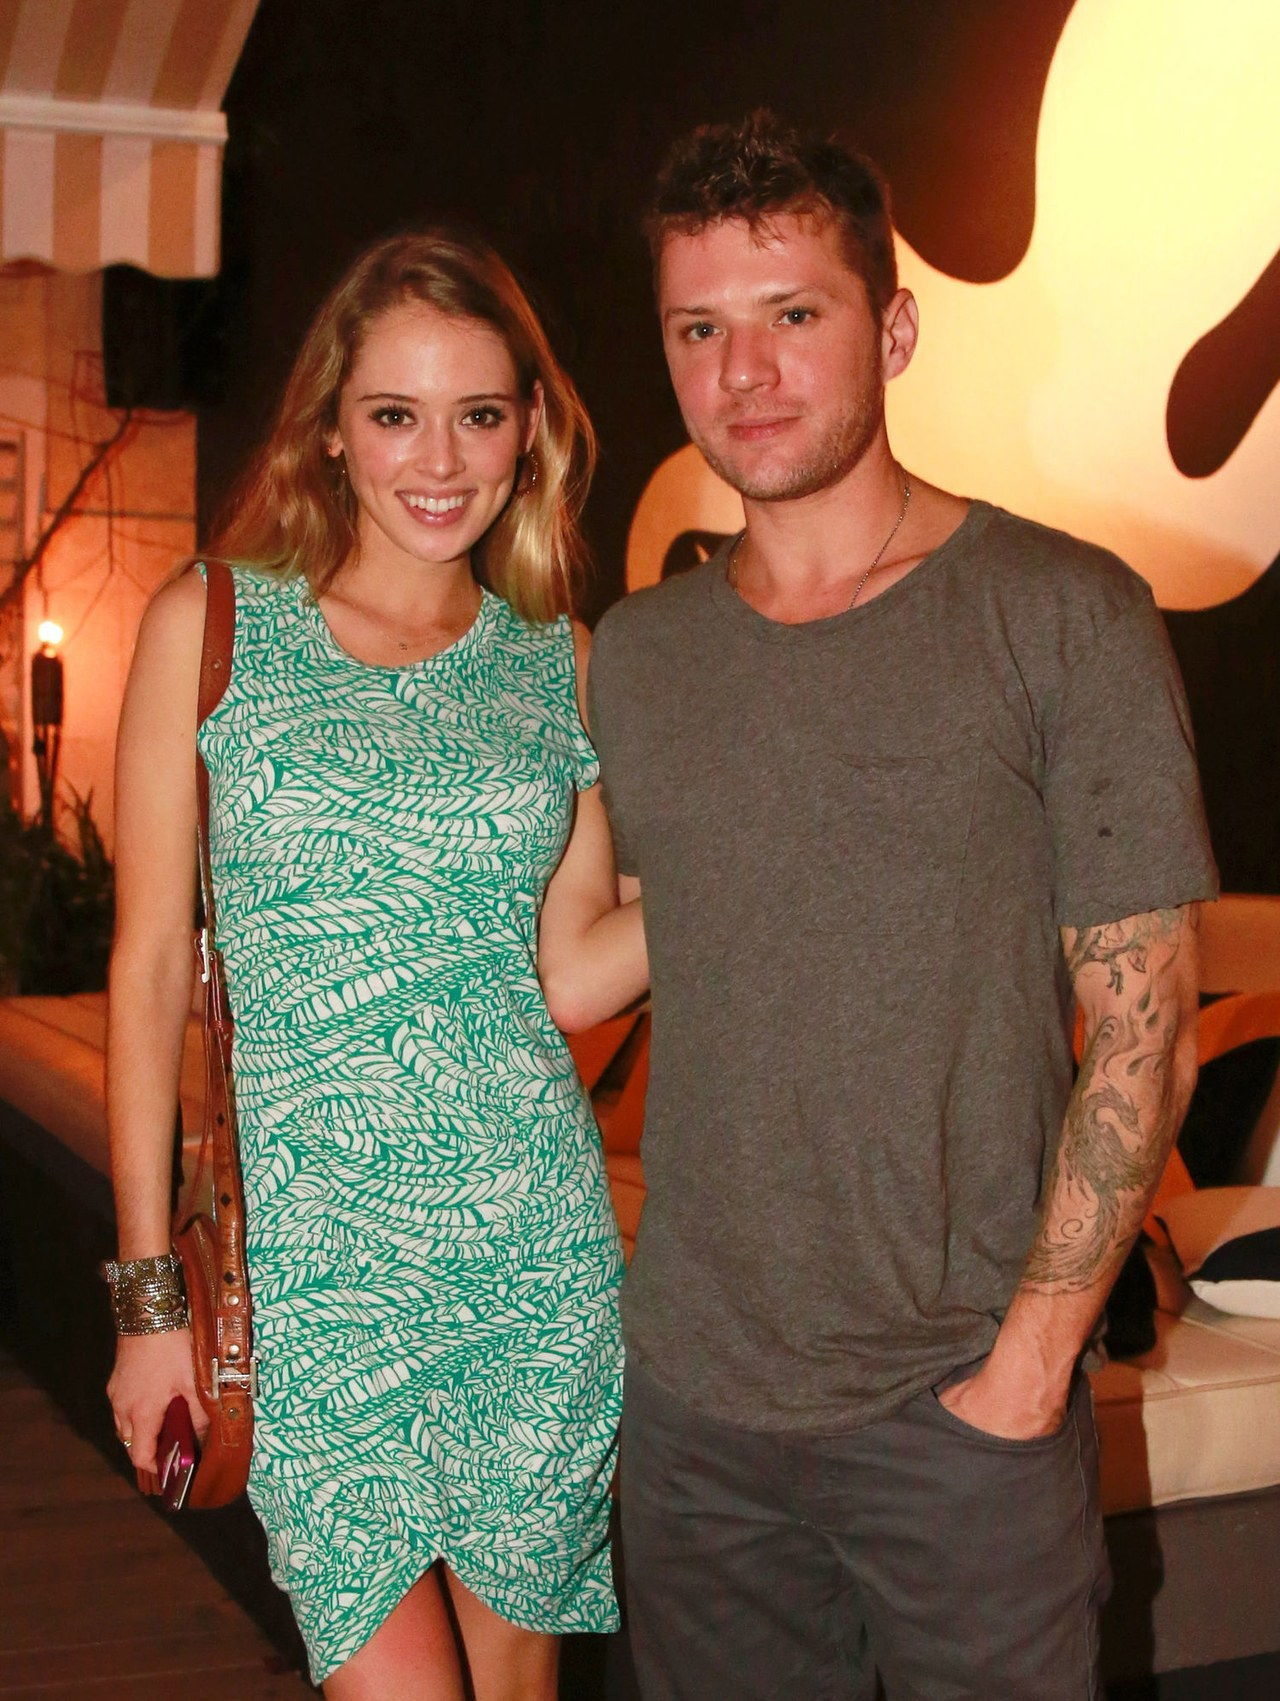 ryan phillippe paulina slagter engaged engagement ring celebrity weddings 1228 getty